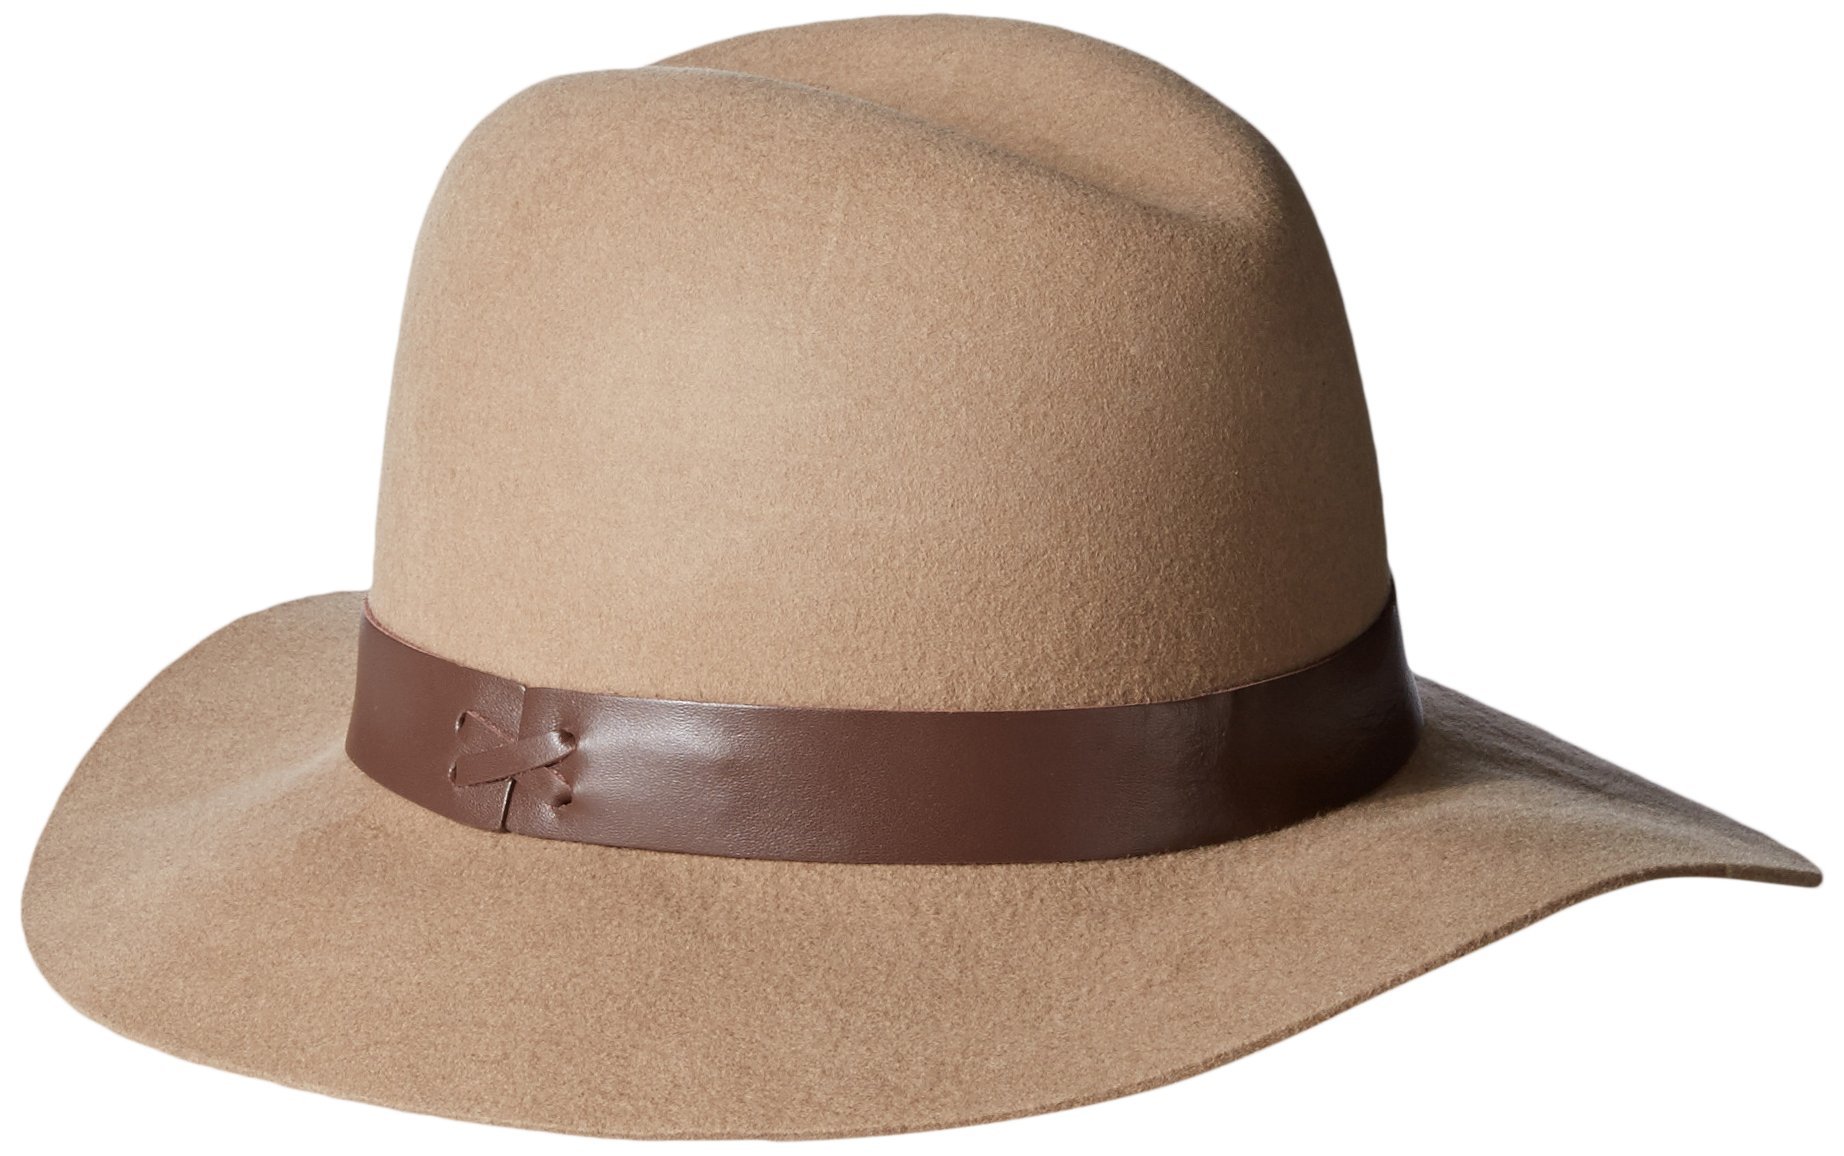 Hat Attack Women's Wool Felt Medium Brim Hat, Taupe/Chocolate, One Size